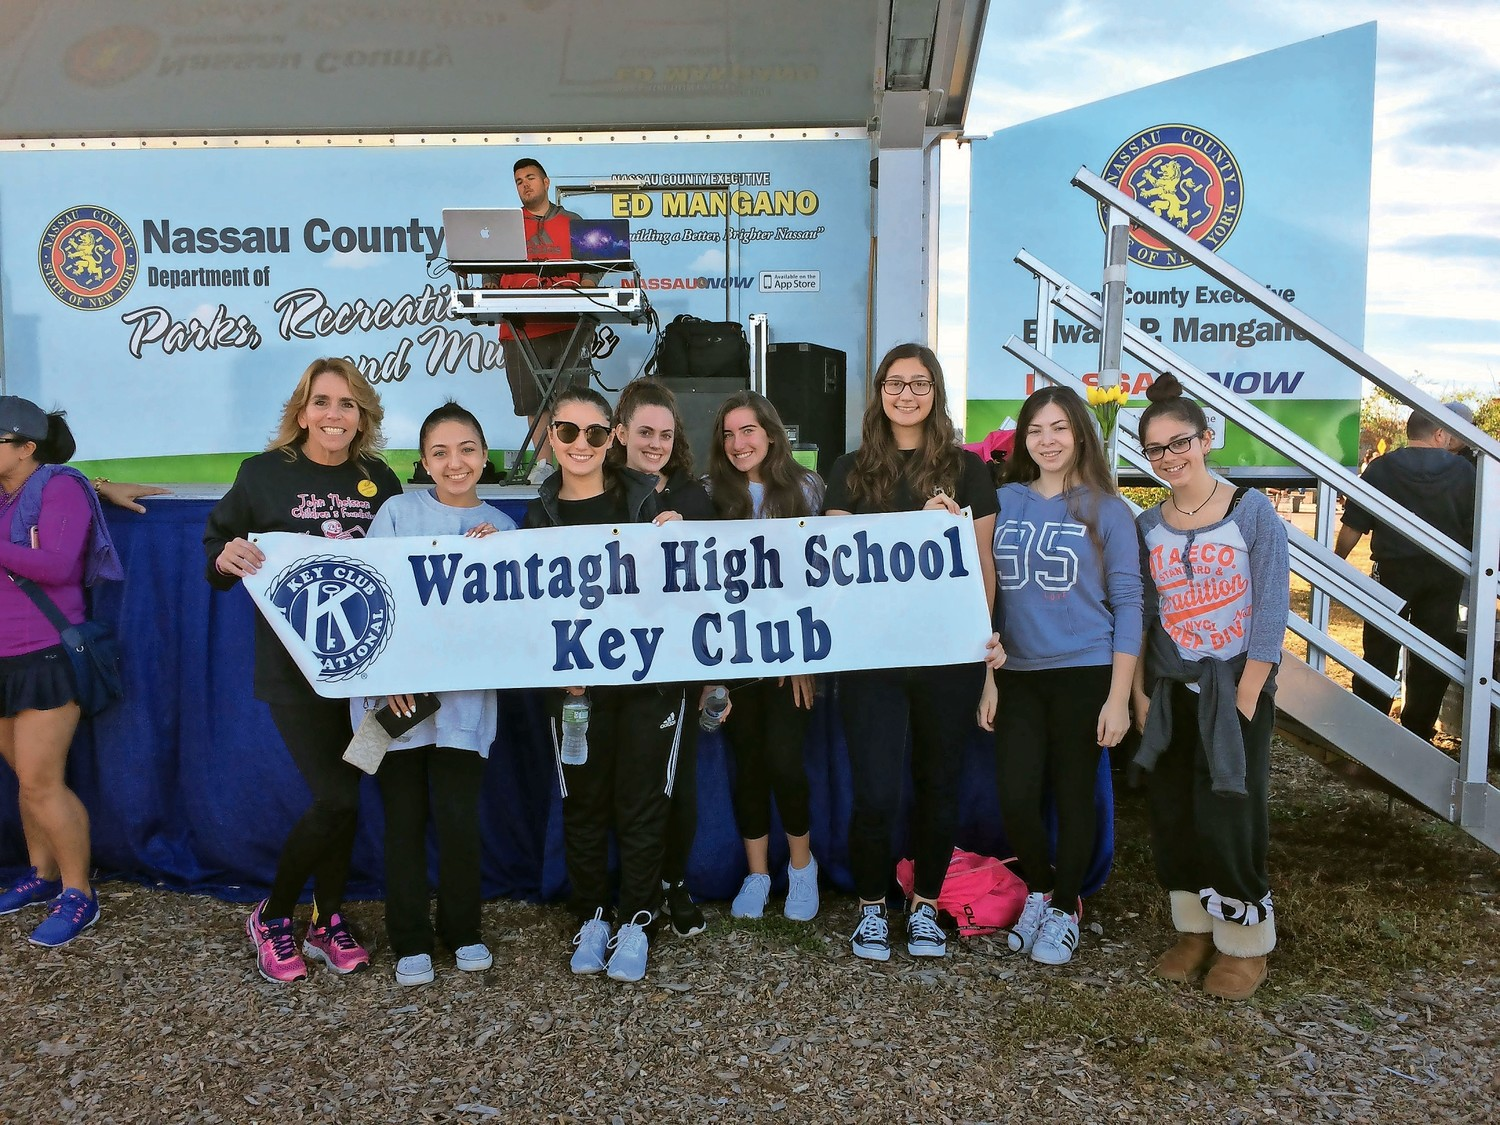 The Wantagh High School Key Club attended the American Foundation for Suicide Prevention's Out of Darkness 5K to help raise money for suicide prevention. Thousands of people gathered for the event at Jones Beach State Park on Oct. 22.